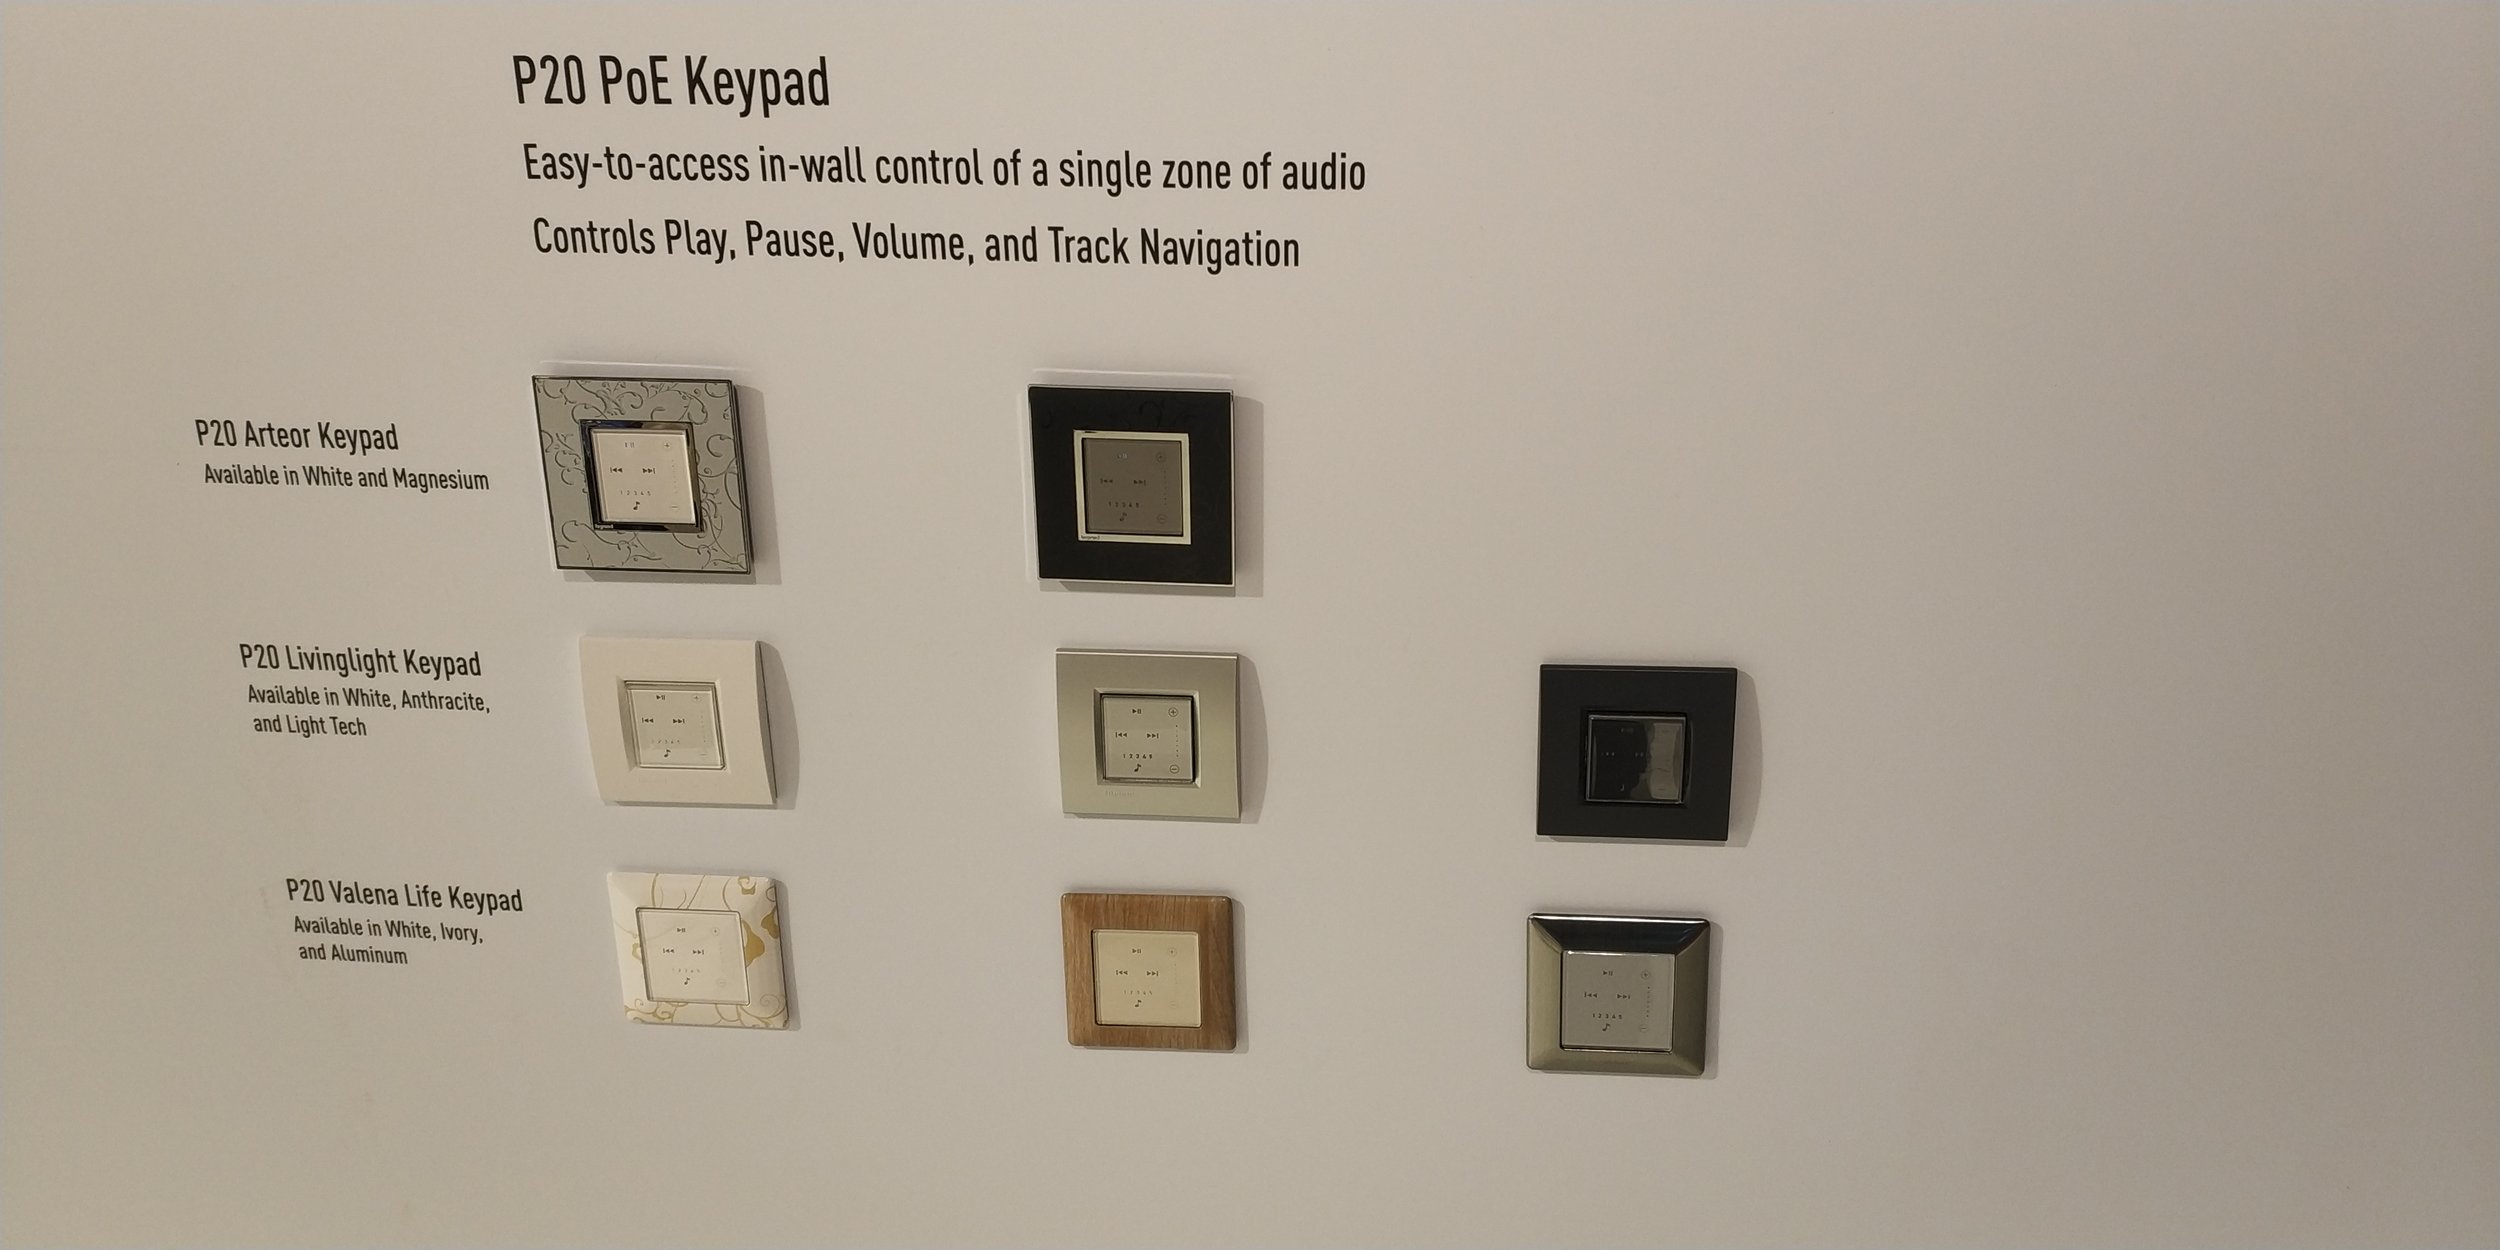 Nuvo in-wall volume and control keypads